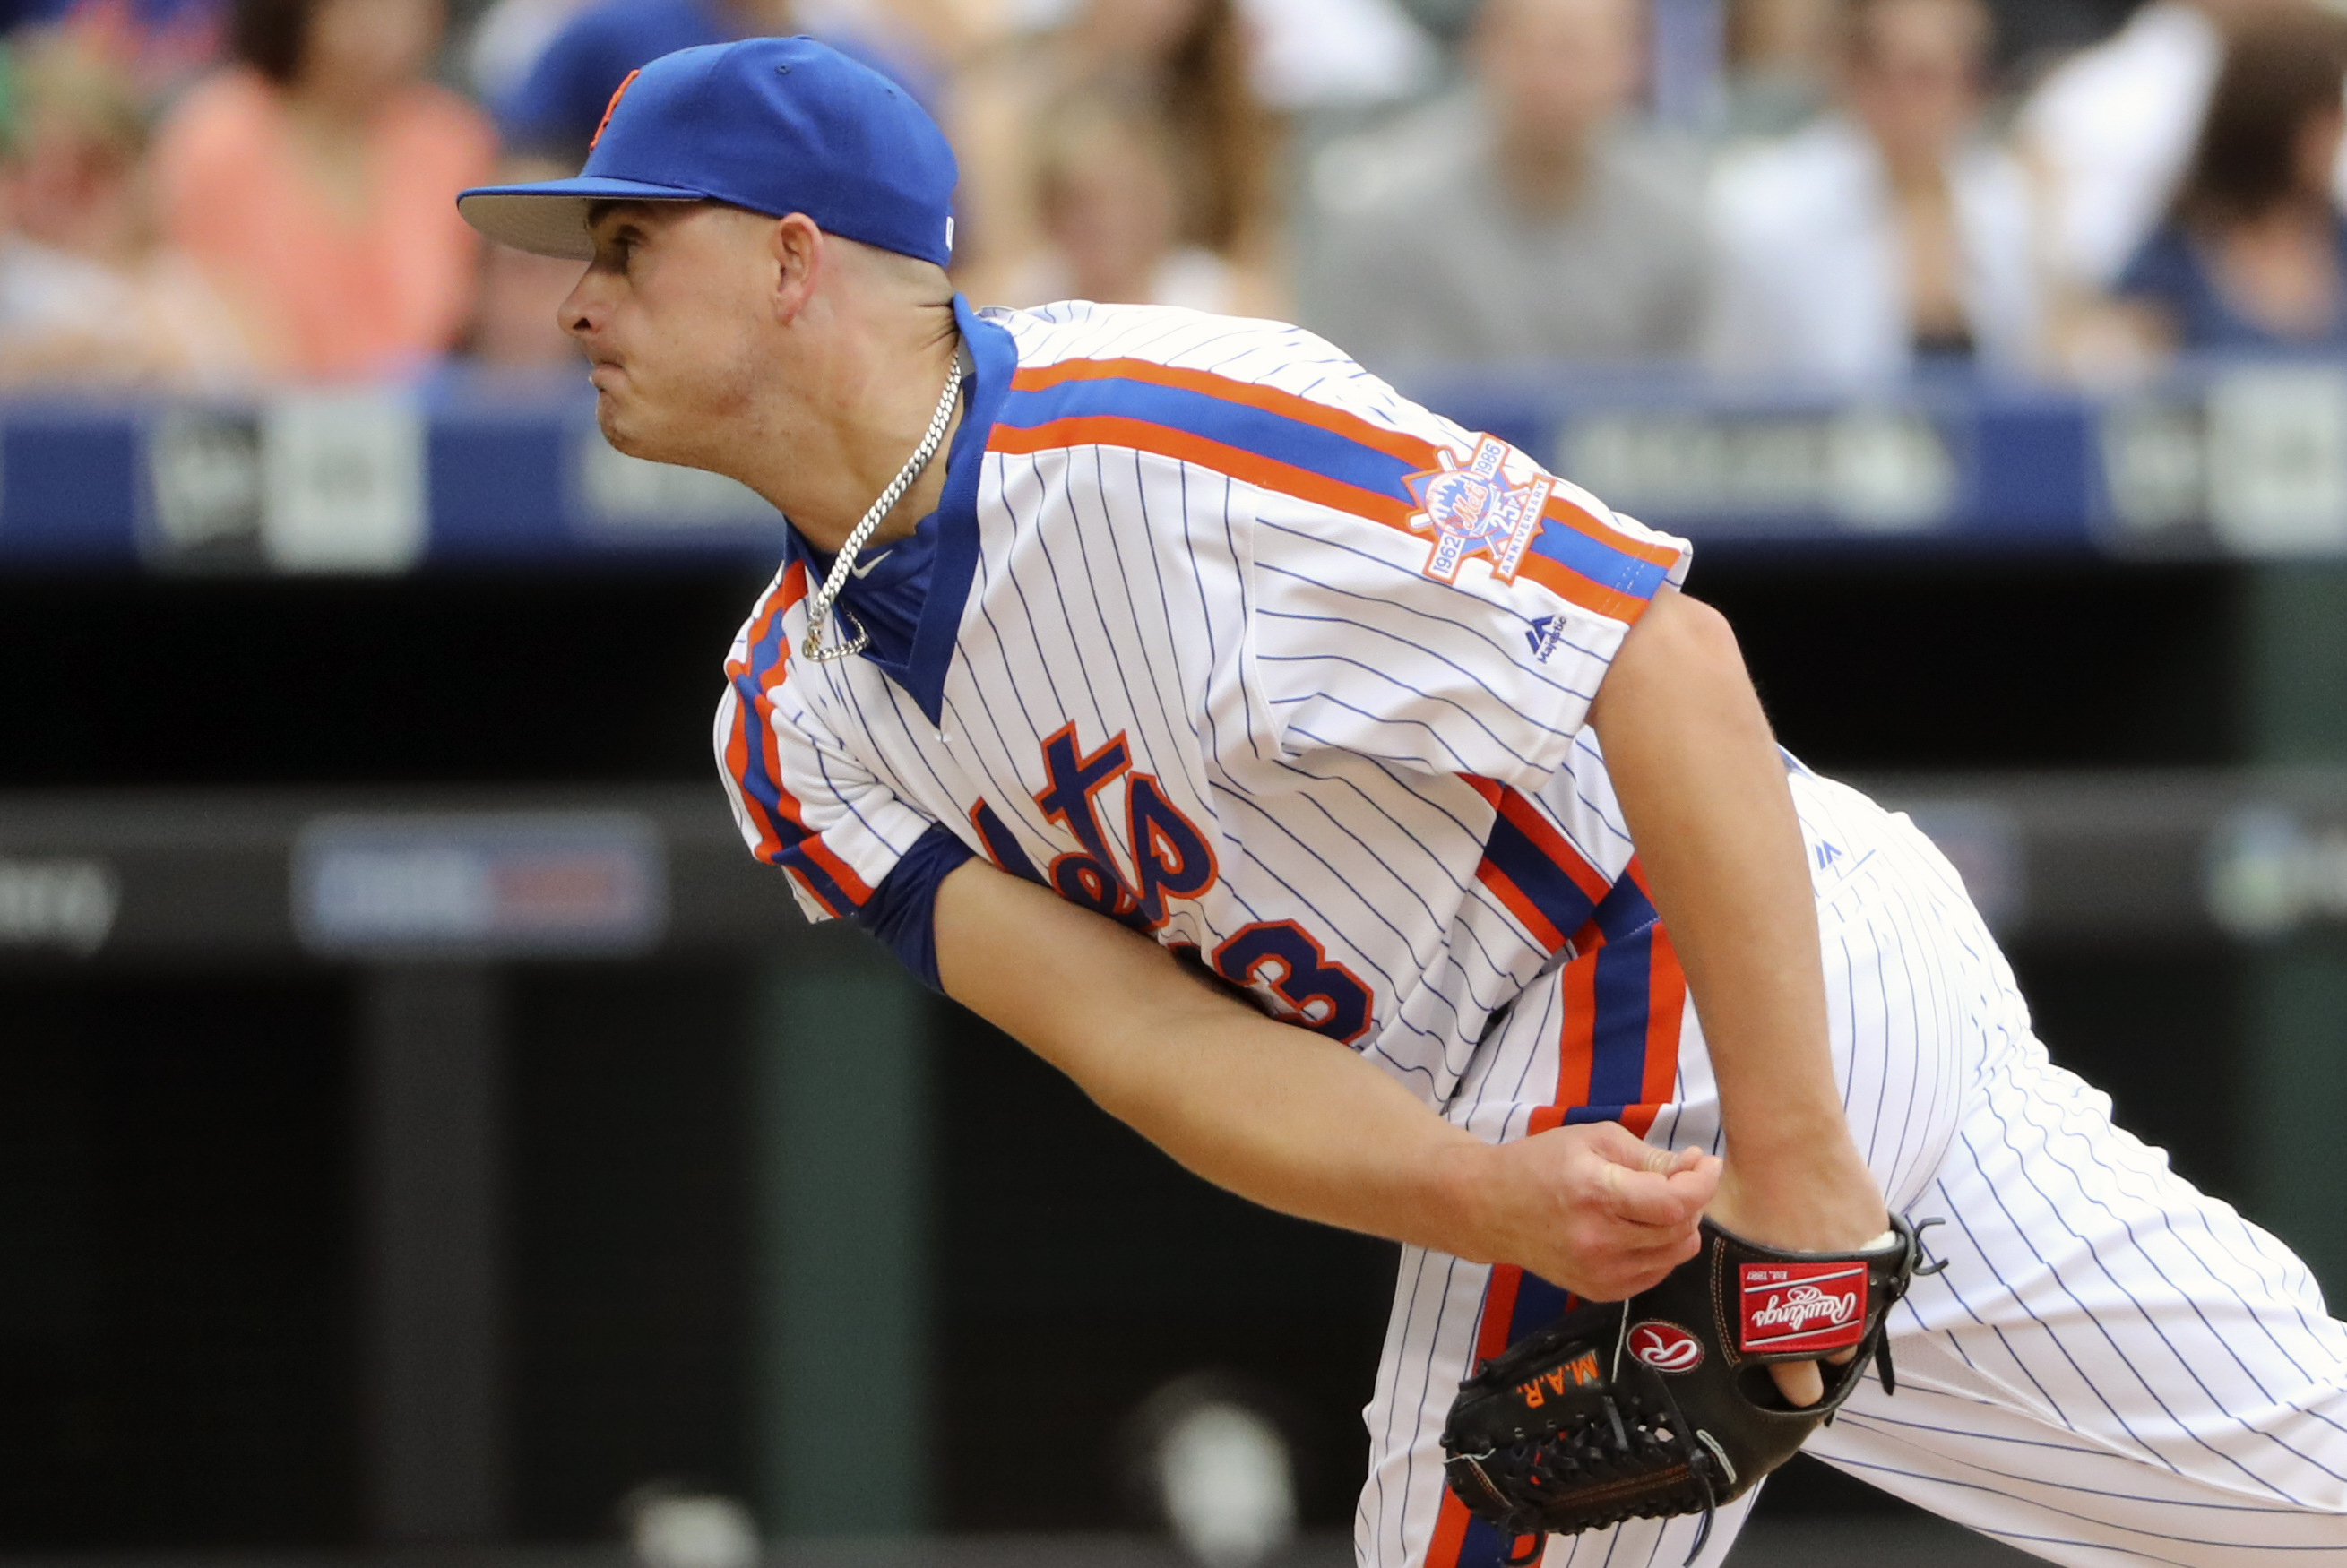 Addison Reed's First Full Year With The New York Mets Was More Than Sensational